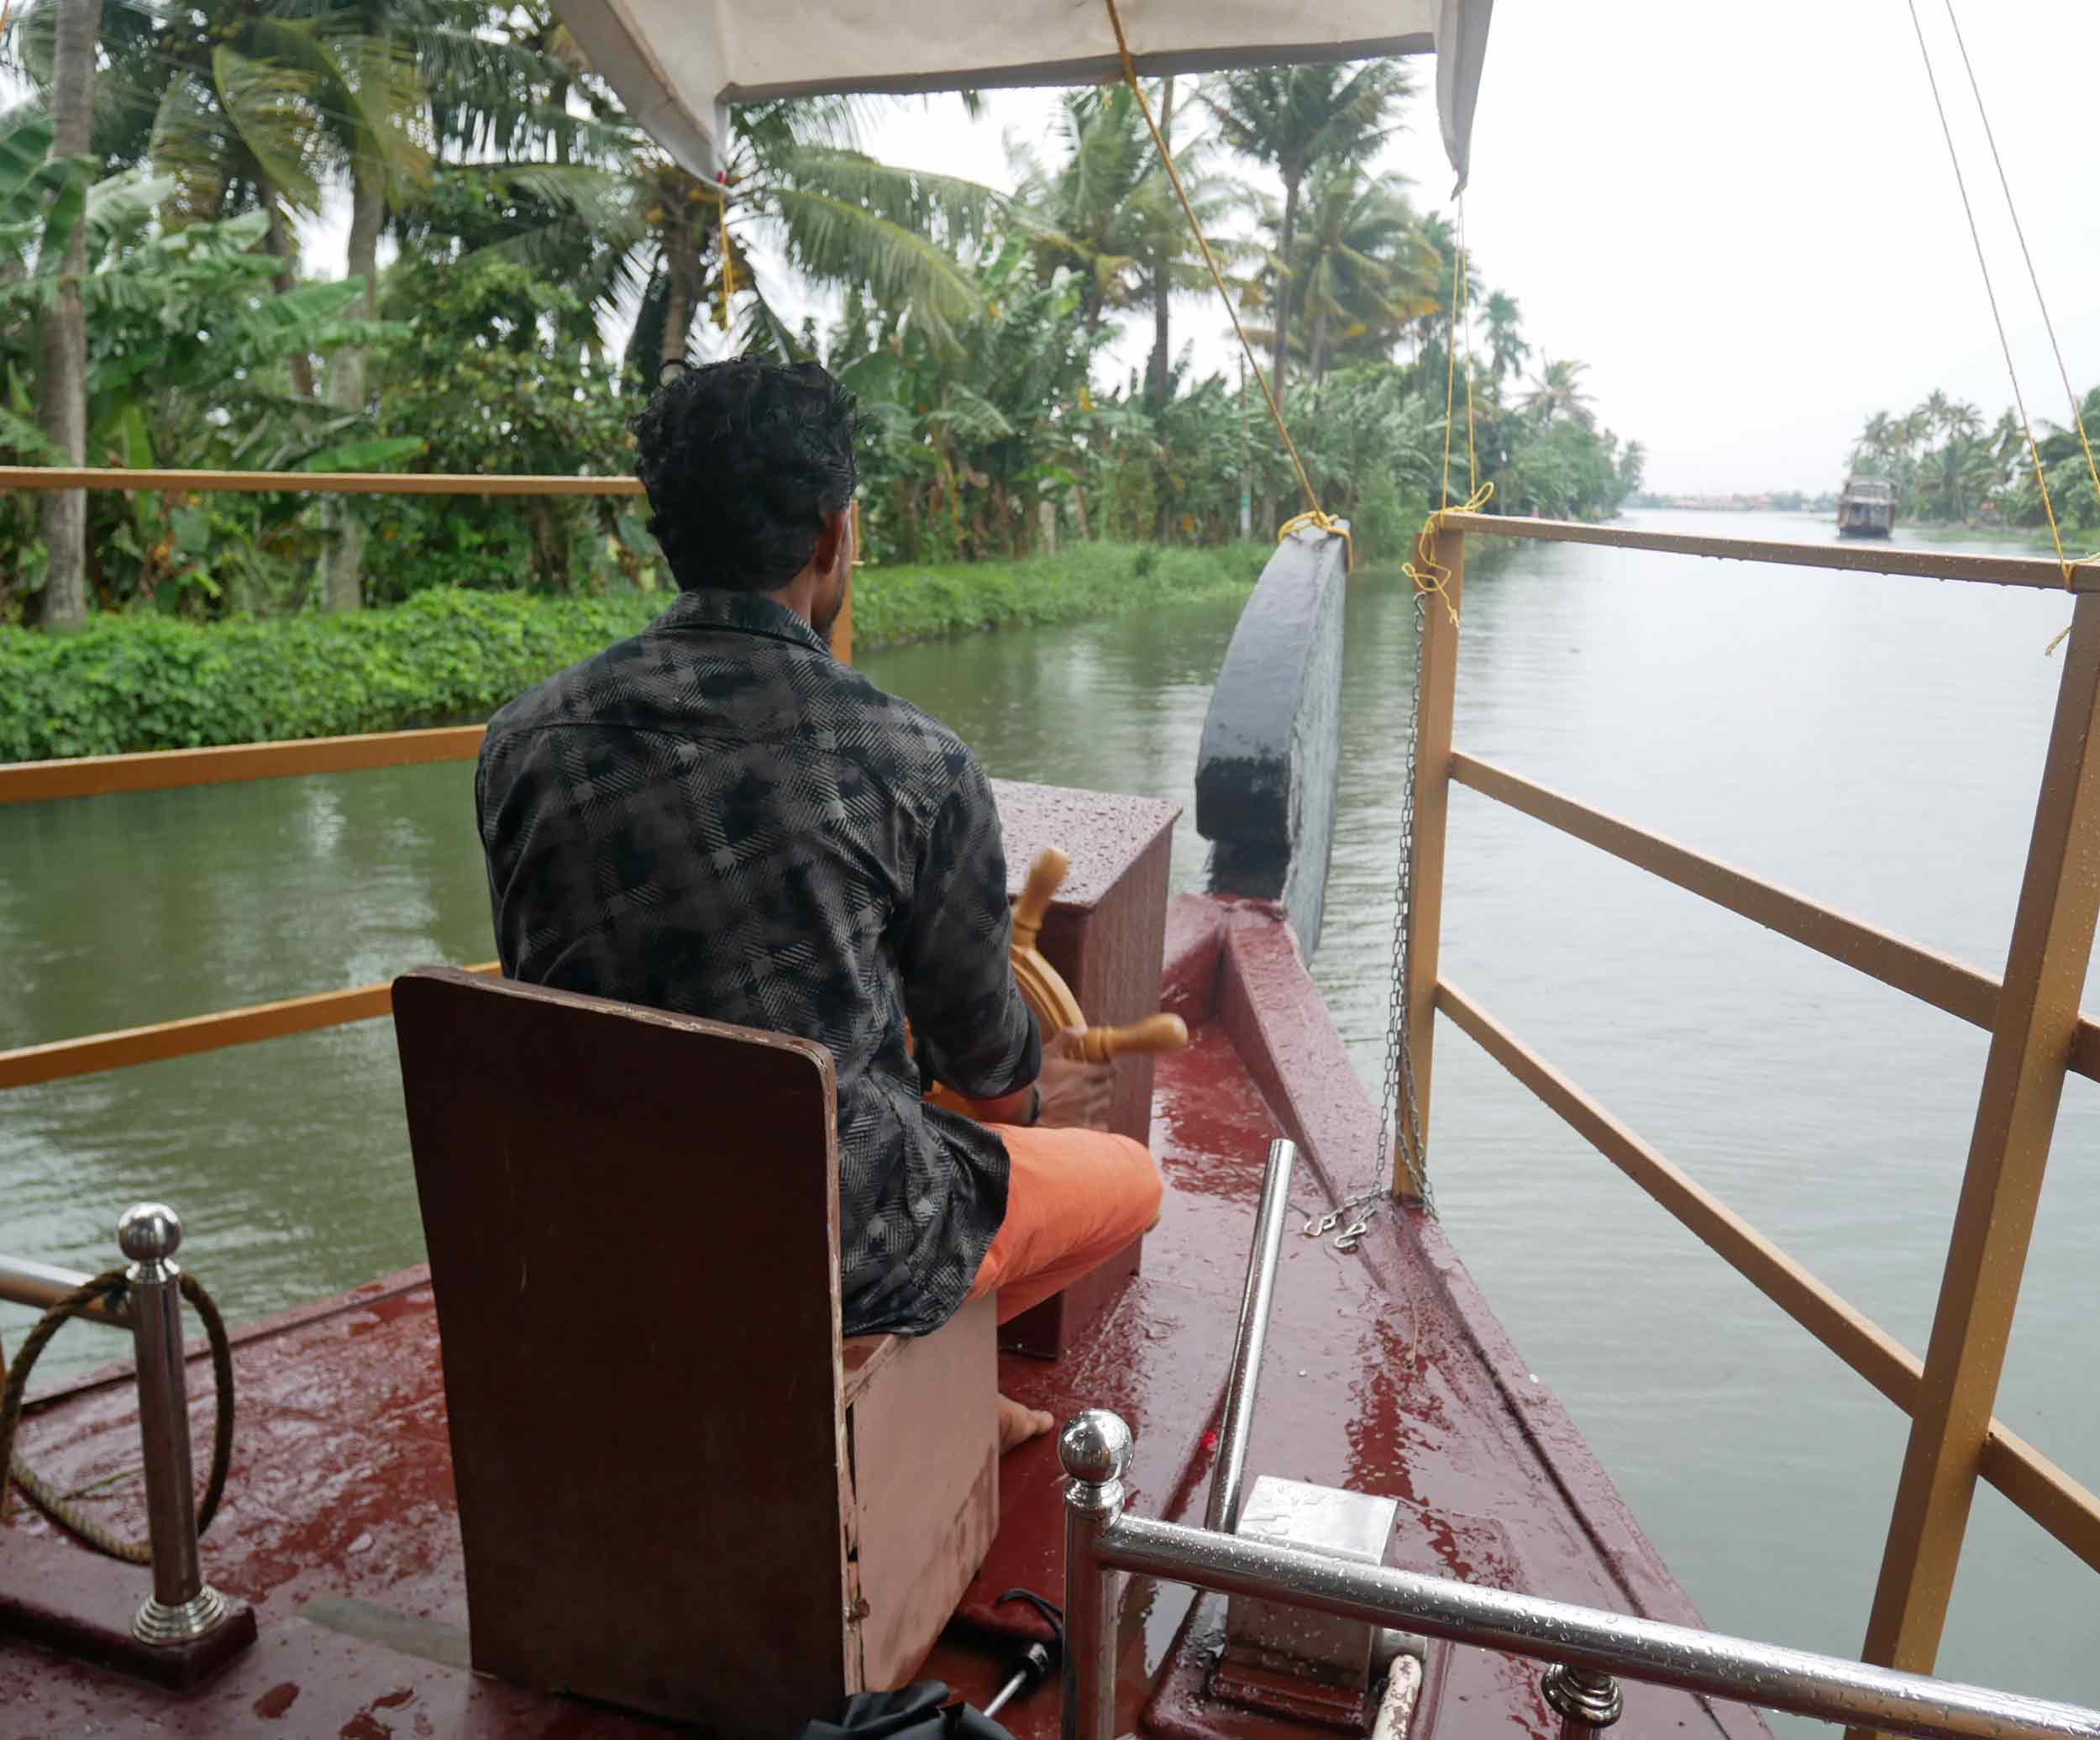 Our fearless boat captain, braving the rain brought by a cyclone out in the Arabrian Sea.